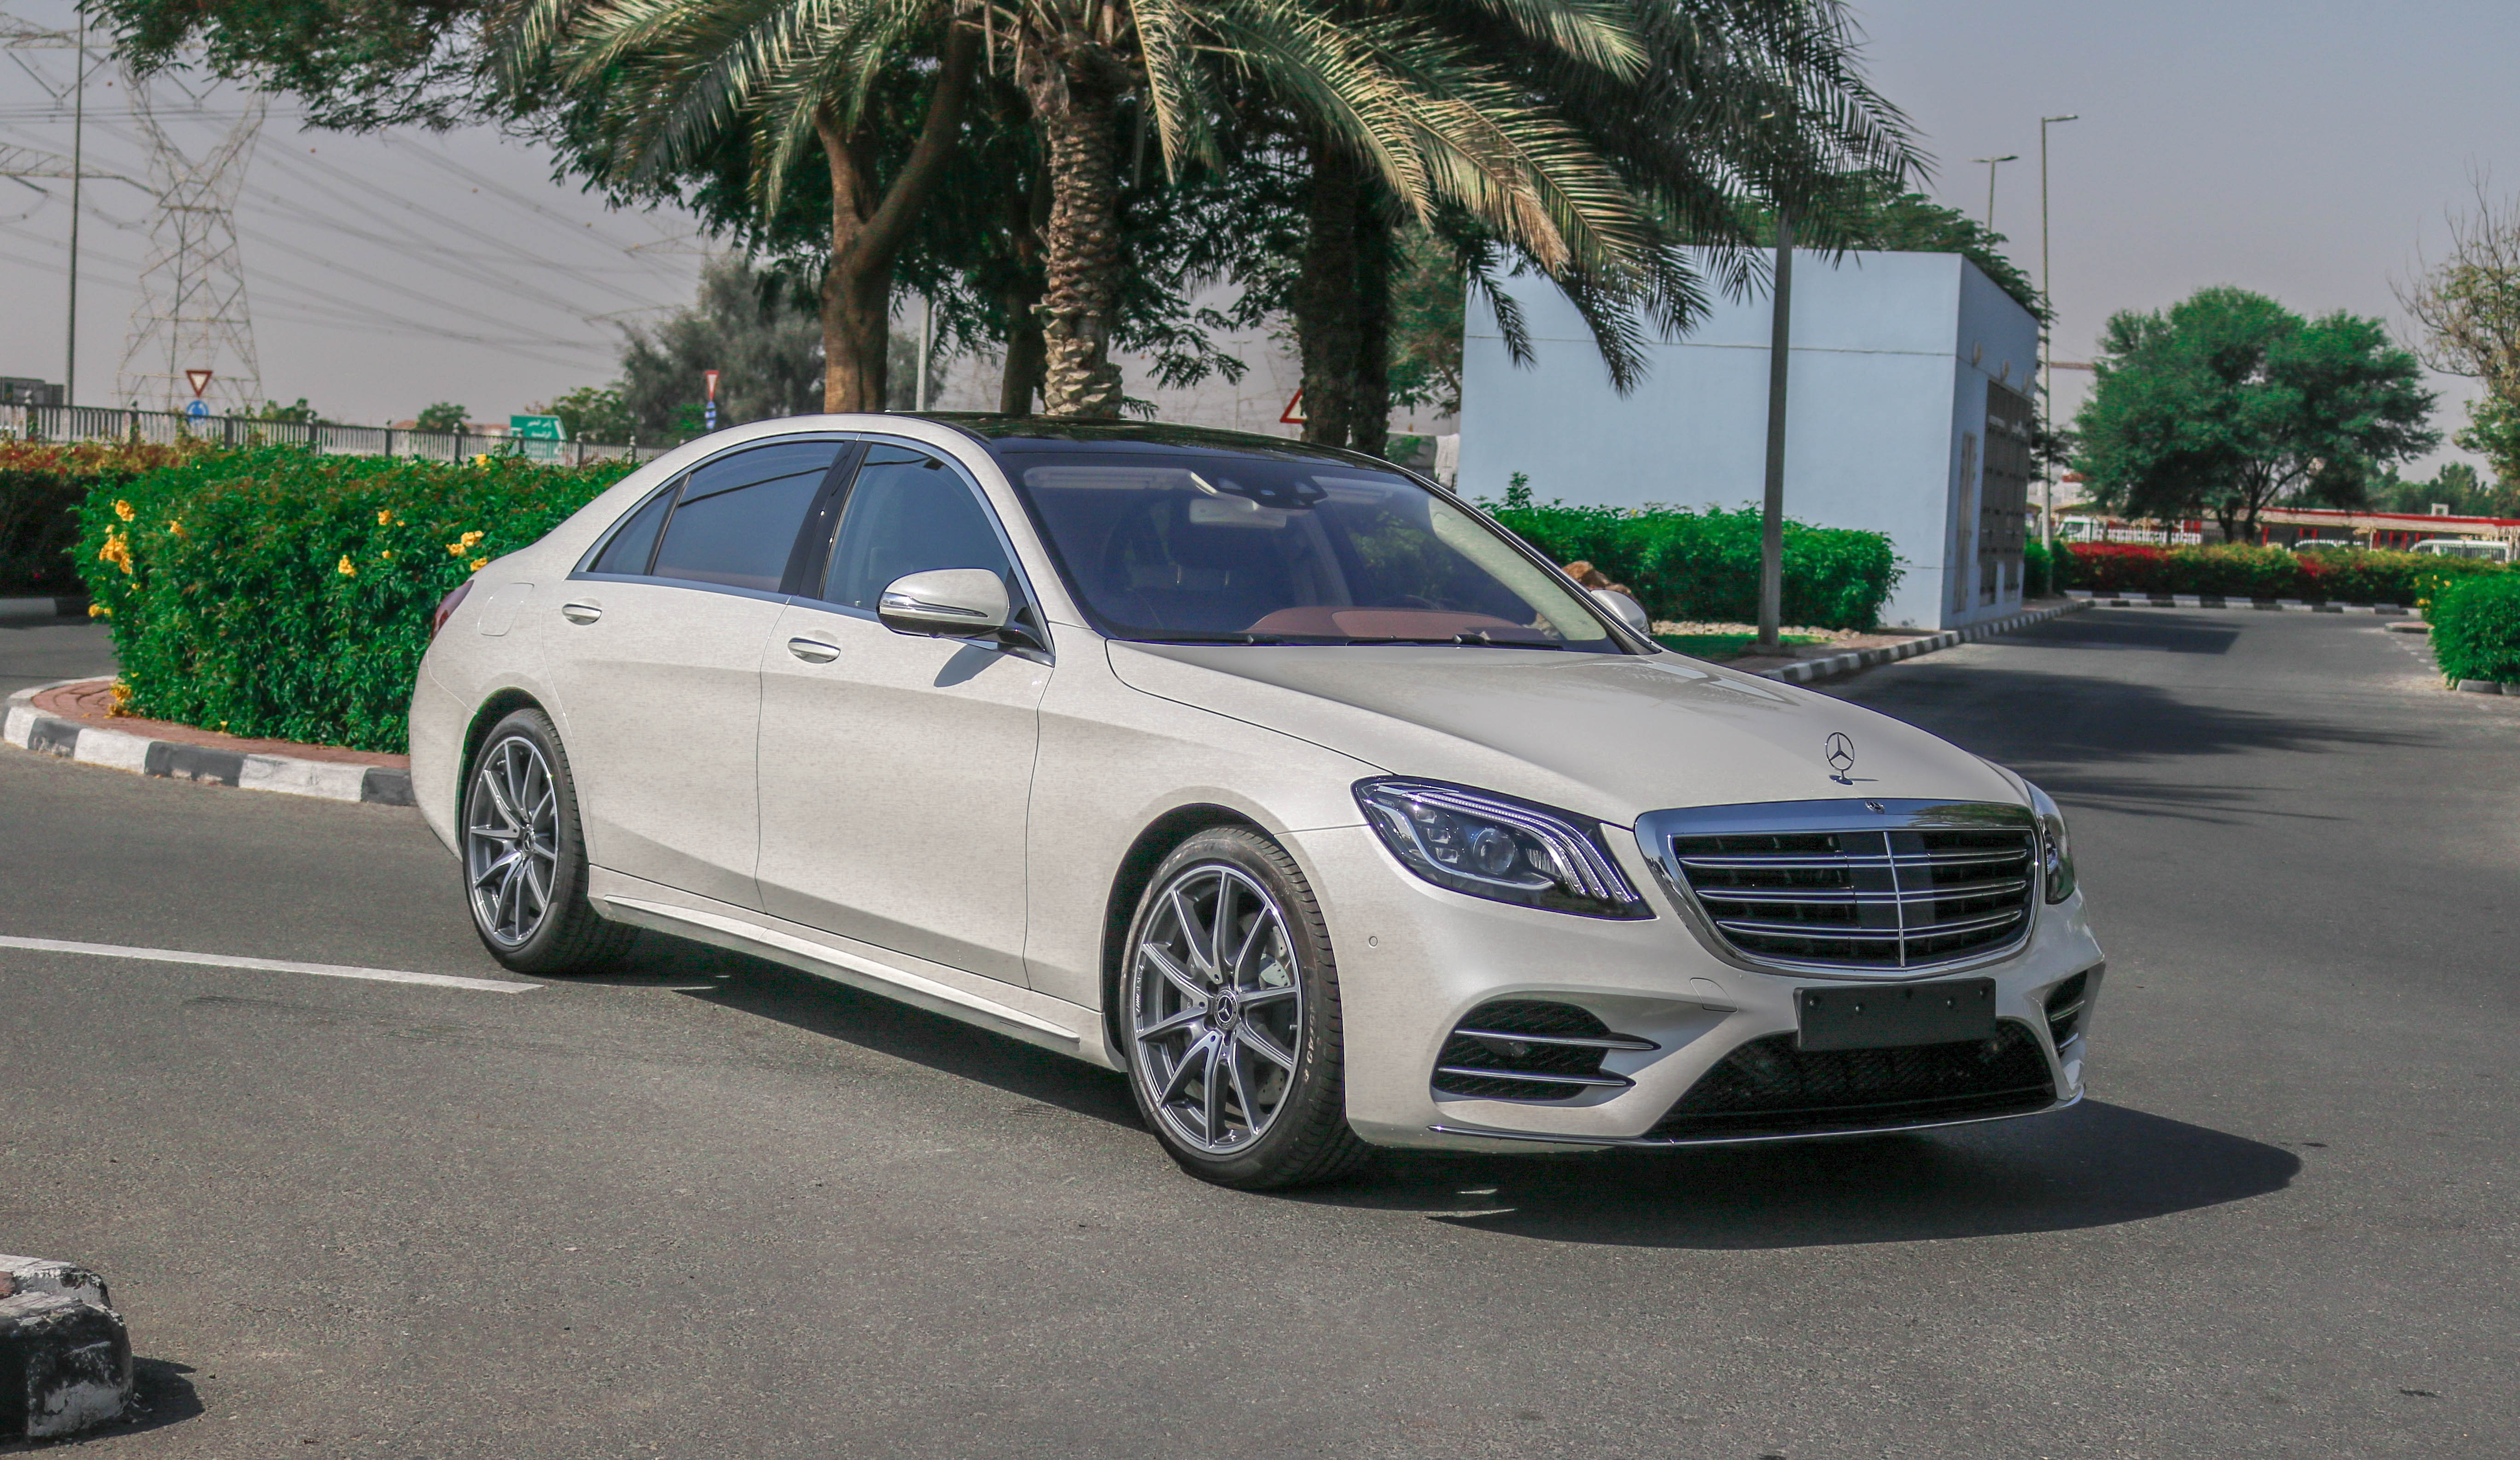 Mercedes benz s560 gcc 2018 formula motors llc dubai for Mercedes benz schedule a